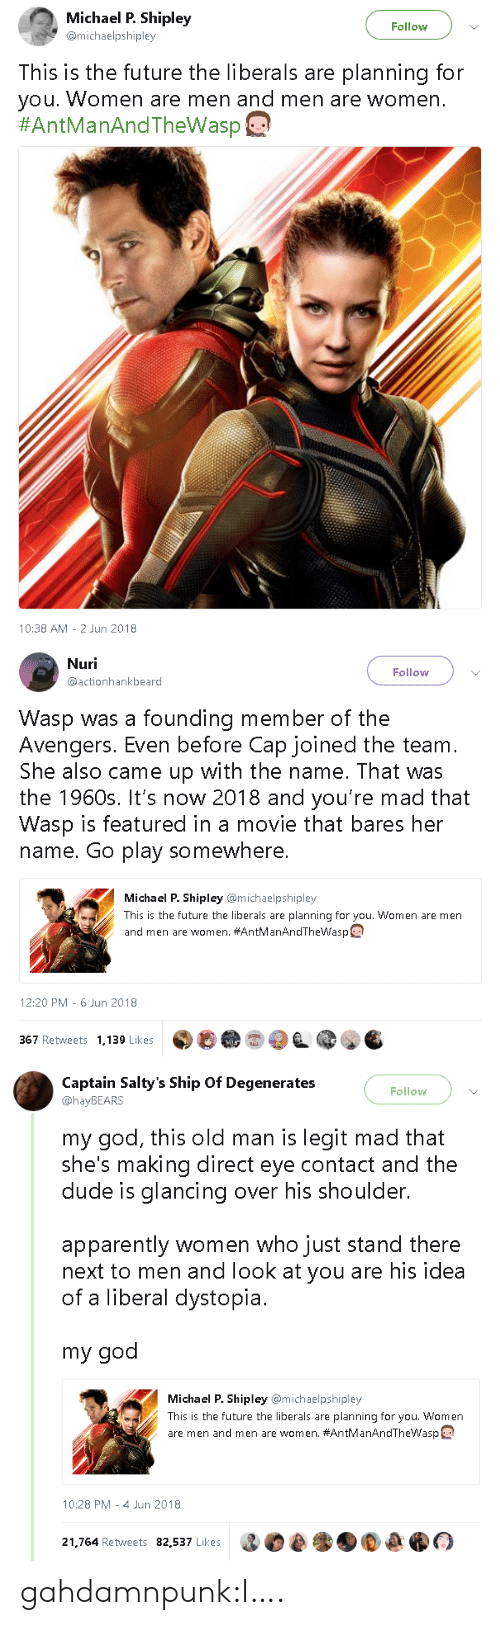 Apparently, Dude, and Future: Michael P. Shipley  @michaelpshipley  Follow  This is the future the liberals are planning for  you. Women are men and men are women  #AntManAndTheWasp@  10:38 AM -2 Jun 2018   Nuri  @actionhankbeard  Follow  Wasp was a founding member of the  Avengers. Even before Cap joined the team  She also came up with the name. That was  the 1960s. It's now 2018 and you're mad that  Wasp is featured in a movie that bares her  name. Go play somewhere.  Michael P. Shipley @michaelpshipley  This is the future the liberals are planning for you. Women are men  and men are women. #AntManAndThewasp  12:20 PM-6 Jun 2018  367 Retweets 1,139 Likes   Captain Salty's Ship Of Degenerates  @hayBEARS  Follow  my god, this old man is legit mad that  she's making direct eye contact and the  dude is glancing over his shoulder.  apparently women who just stand there  next to men and look at you are his idea  of a liberal dystopia.  my god  Michael P. Shipley @michaelpshipley  This is the future the liberals are planning for you. Women  are men and men are women. #AntManAndThewasp  10:28 PM-4 Jun 2018  21.764 Retweets 82,537 Likes gahdamnpunk:I….